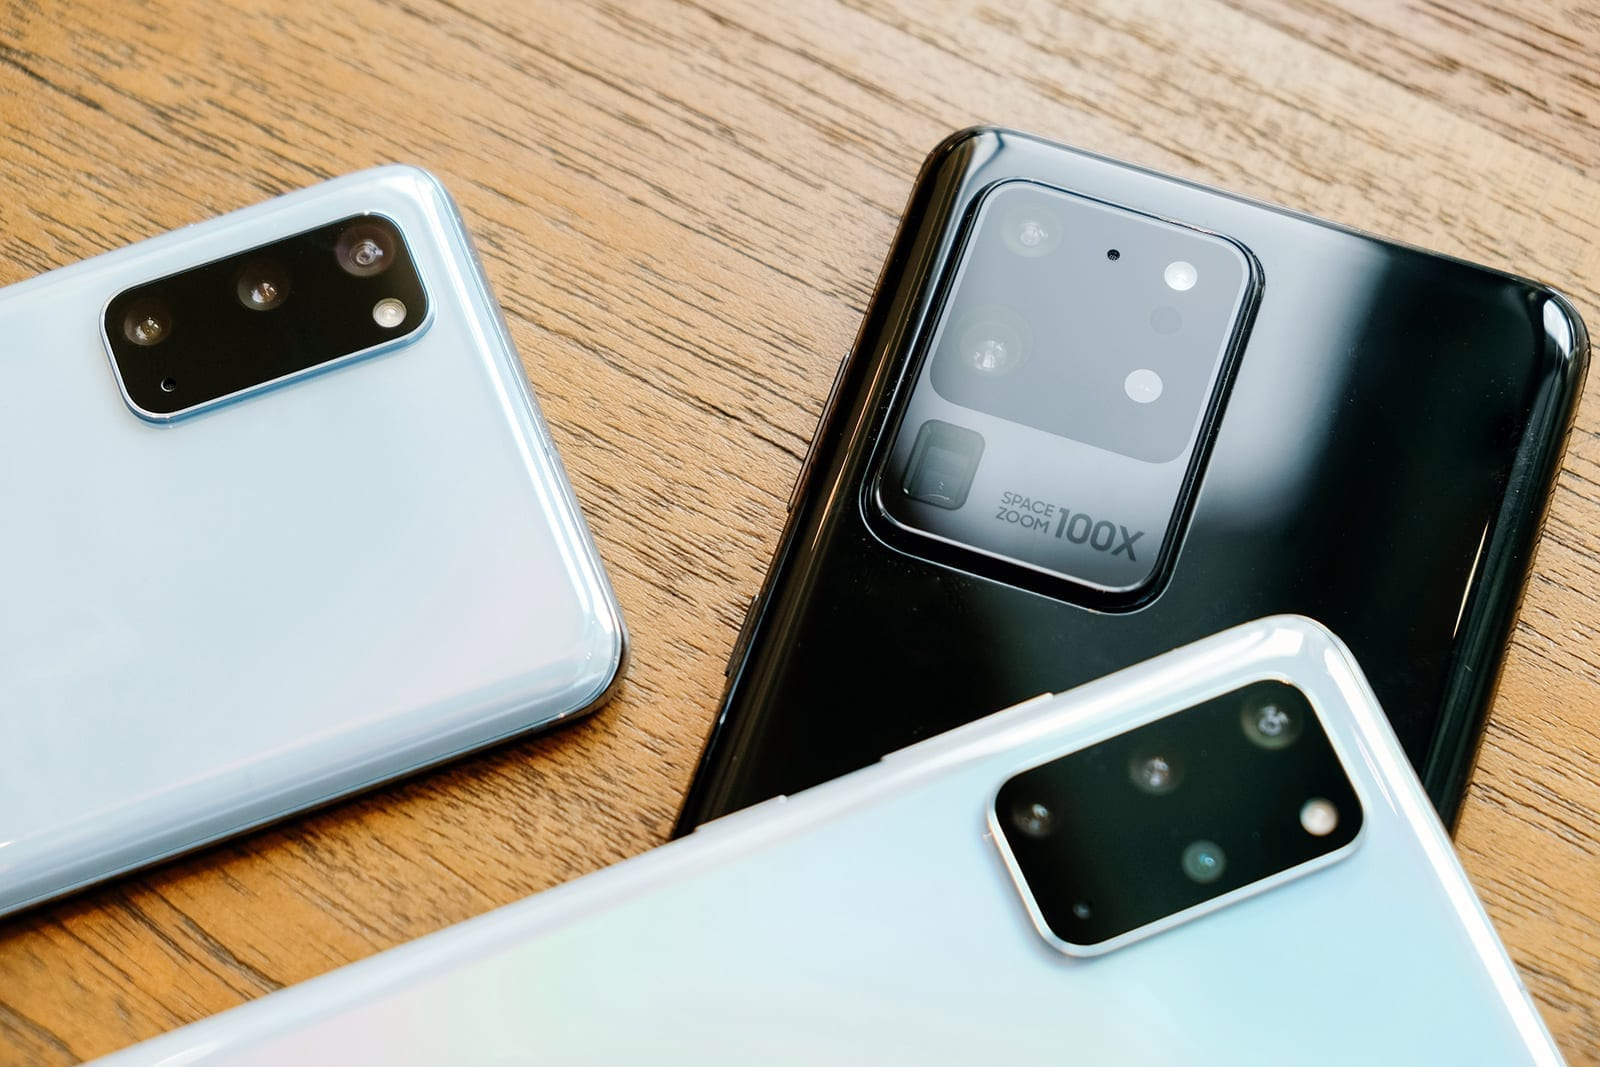 Samsung vows to improve Galaxy S20 Ultra camera after bad reviews